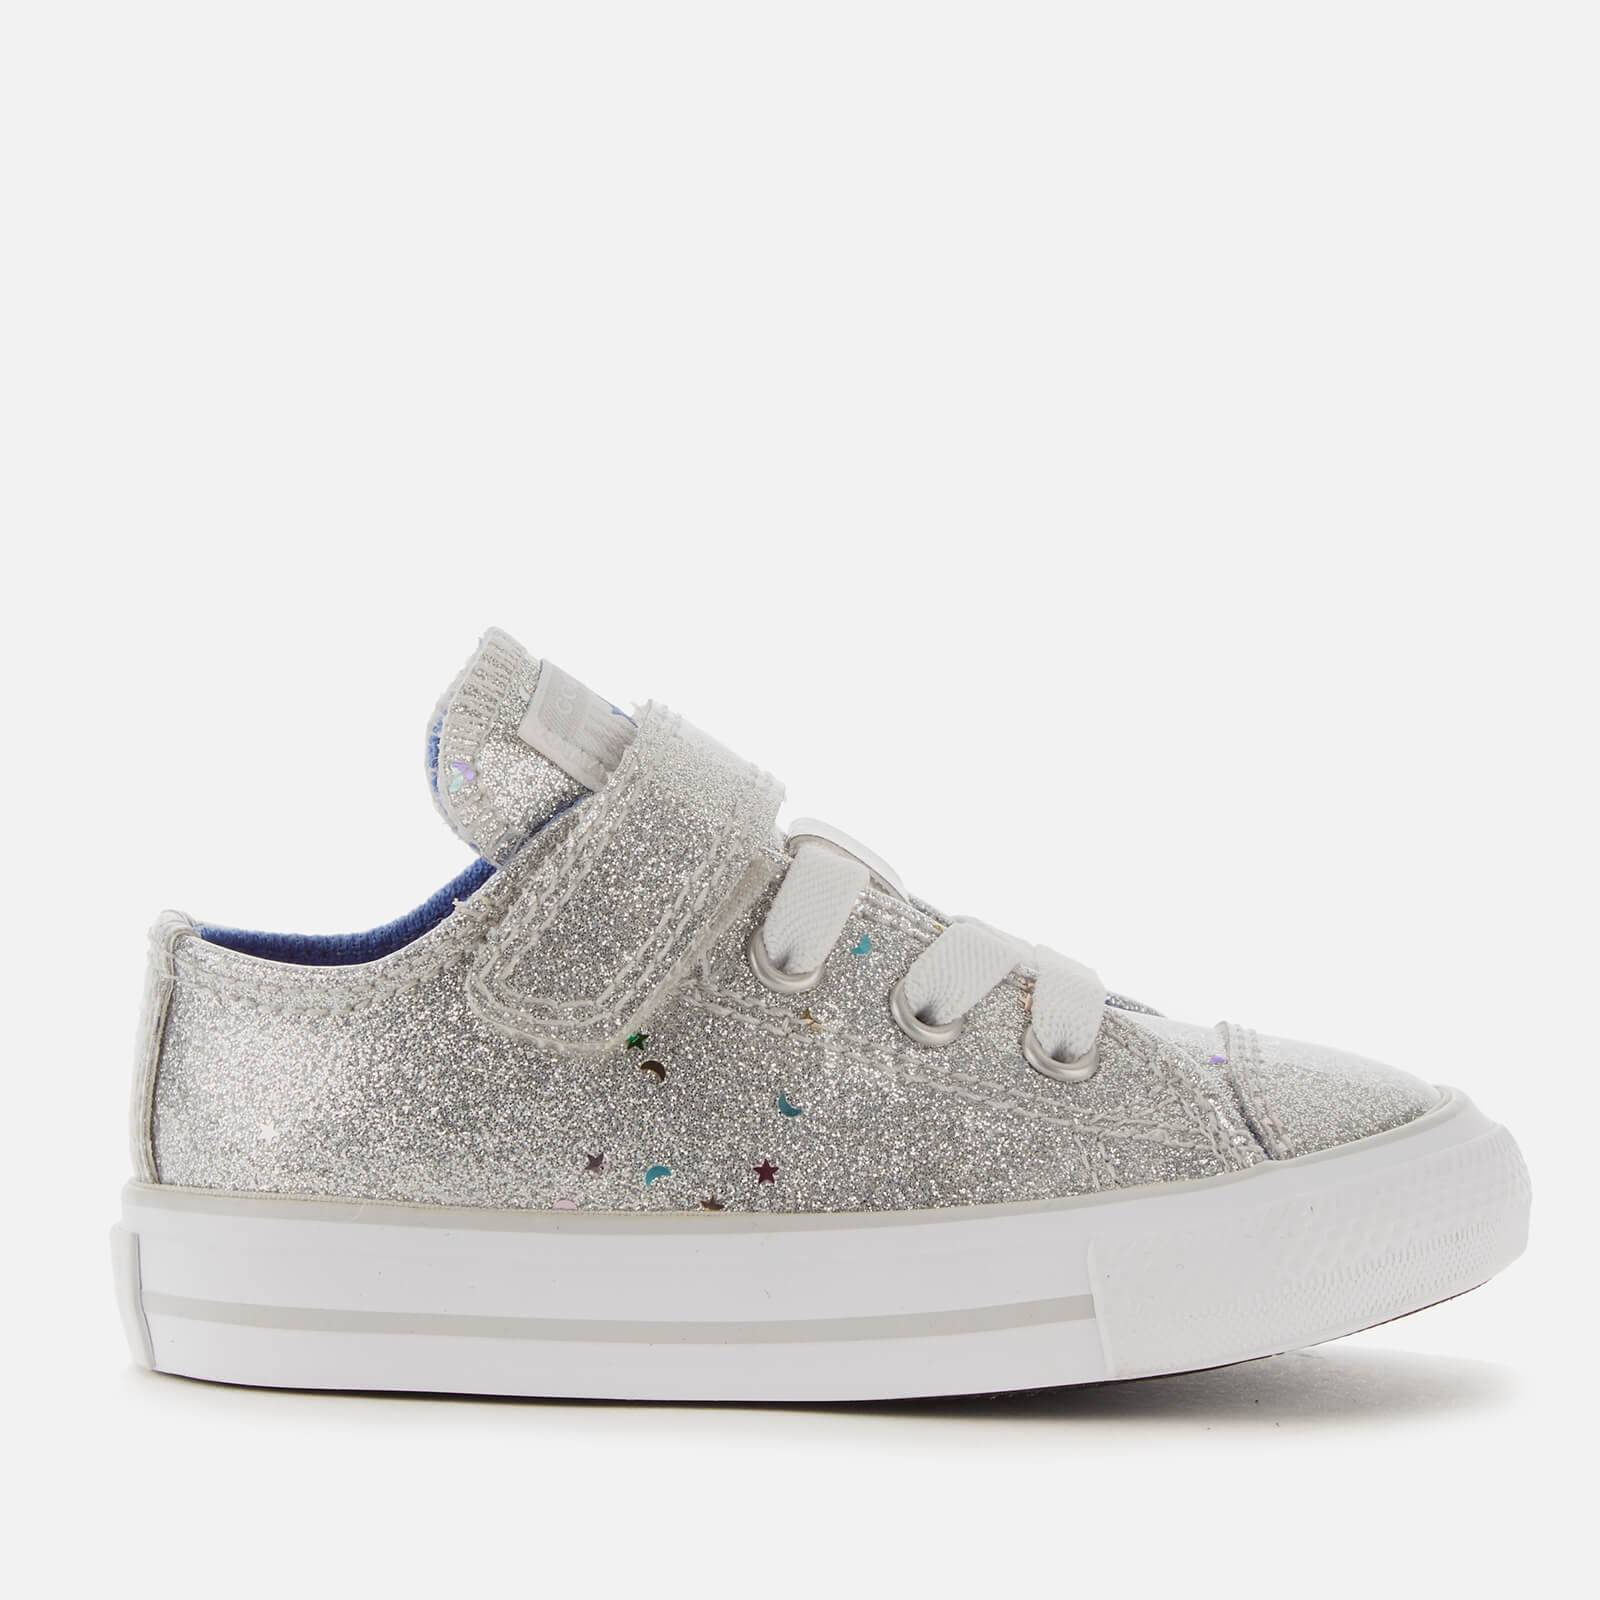 Converse Toddlers' Chuck Taylor All Star 1V Galaxy Glimmer Ox Trainers - Silver/Ozone Blue/White - UK 4 Toddler - Silver